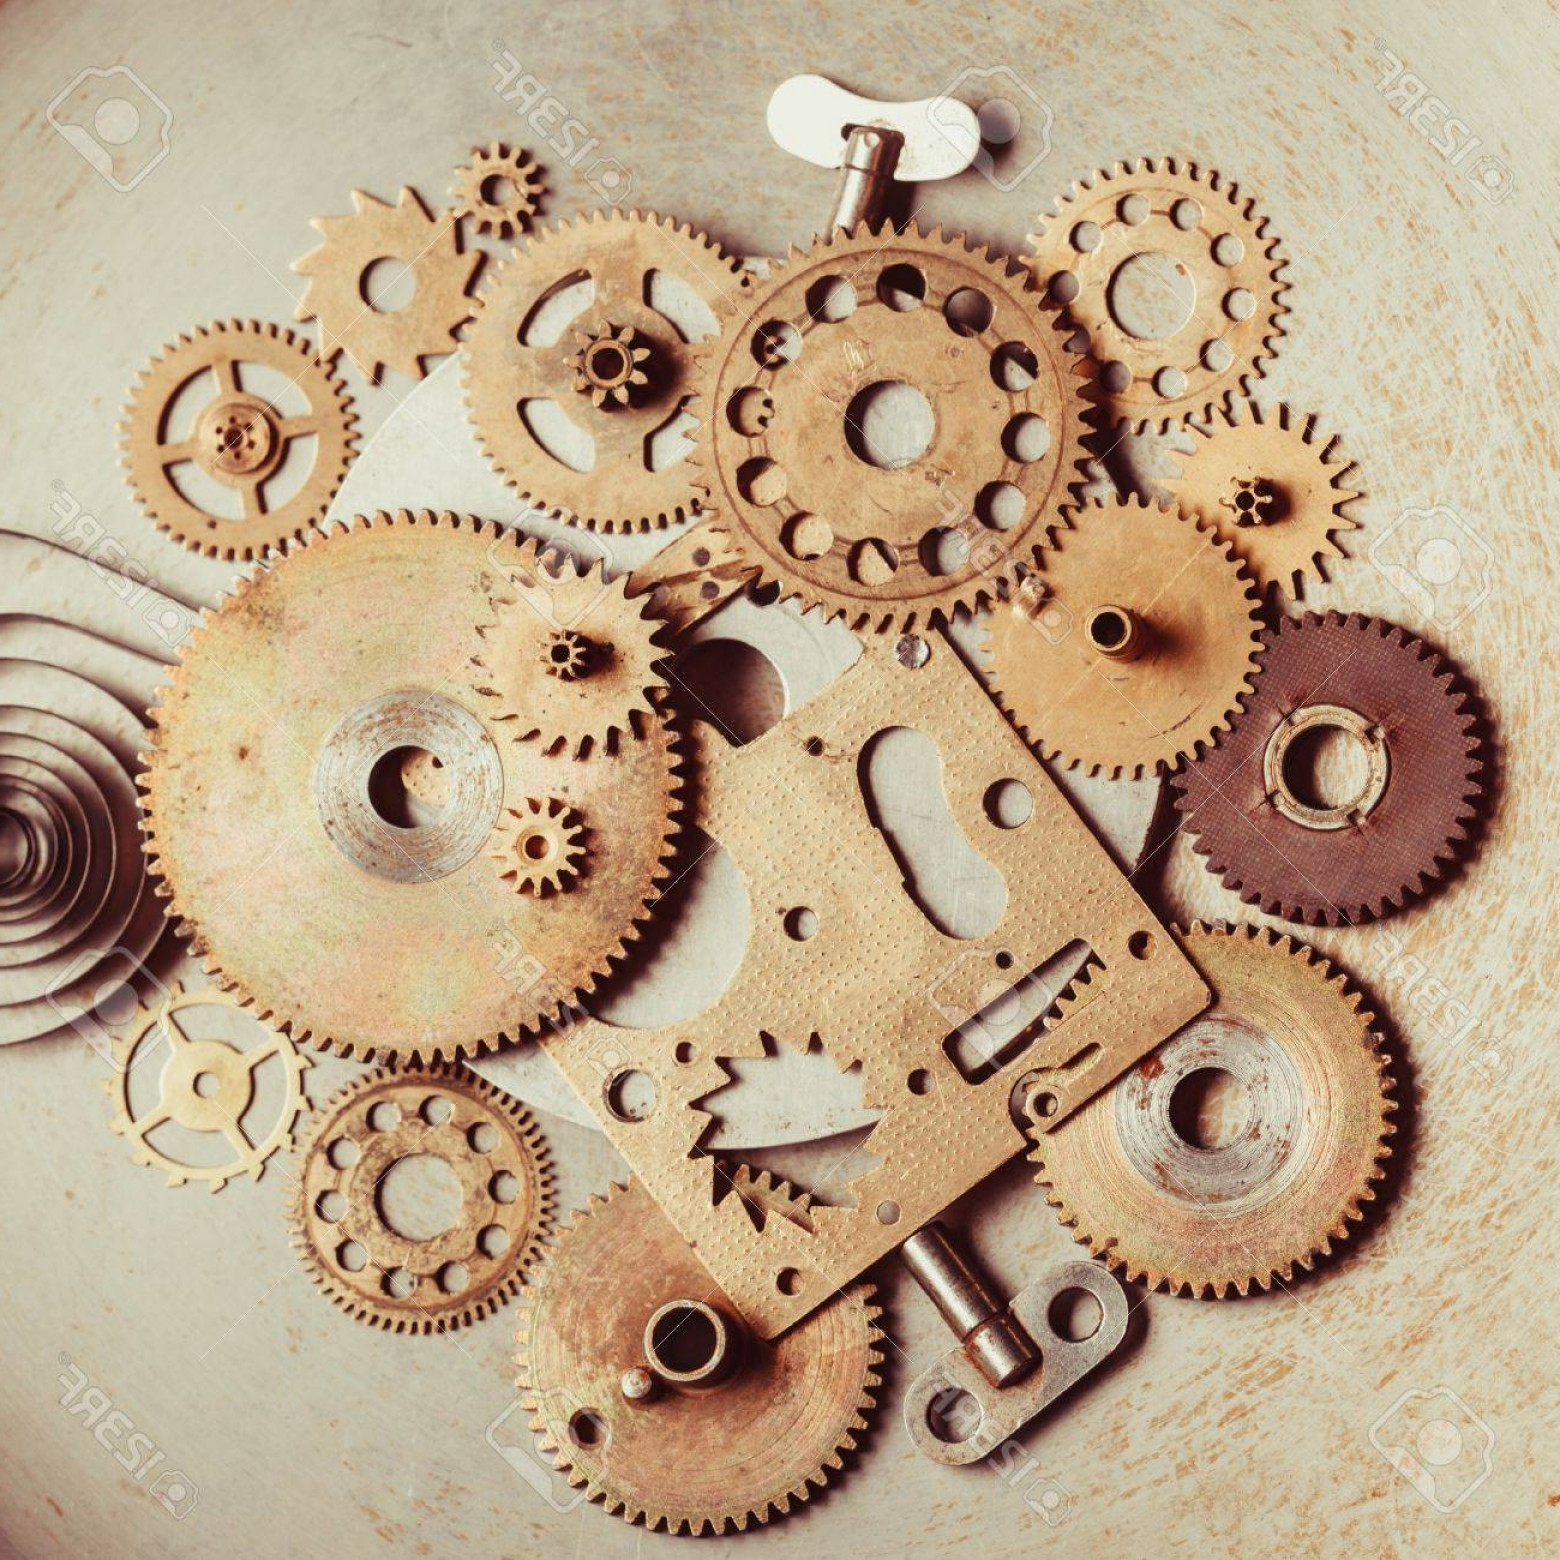 Vector Mechanical Clock Wheels: Photosteampunk Background From Mechanical Clocks Details Over Old Metal Background Inside The Clock Gears